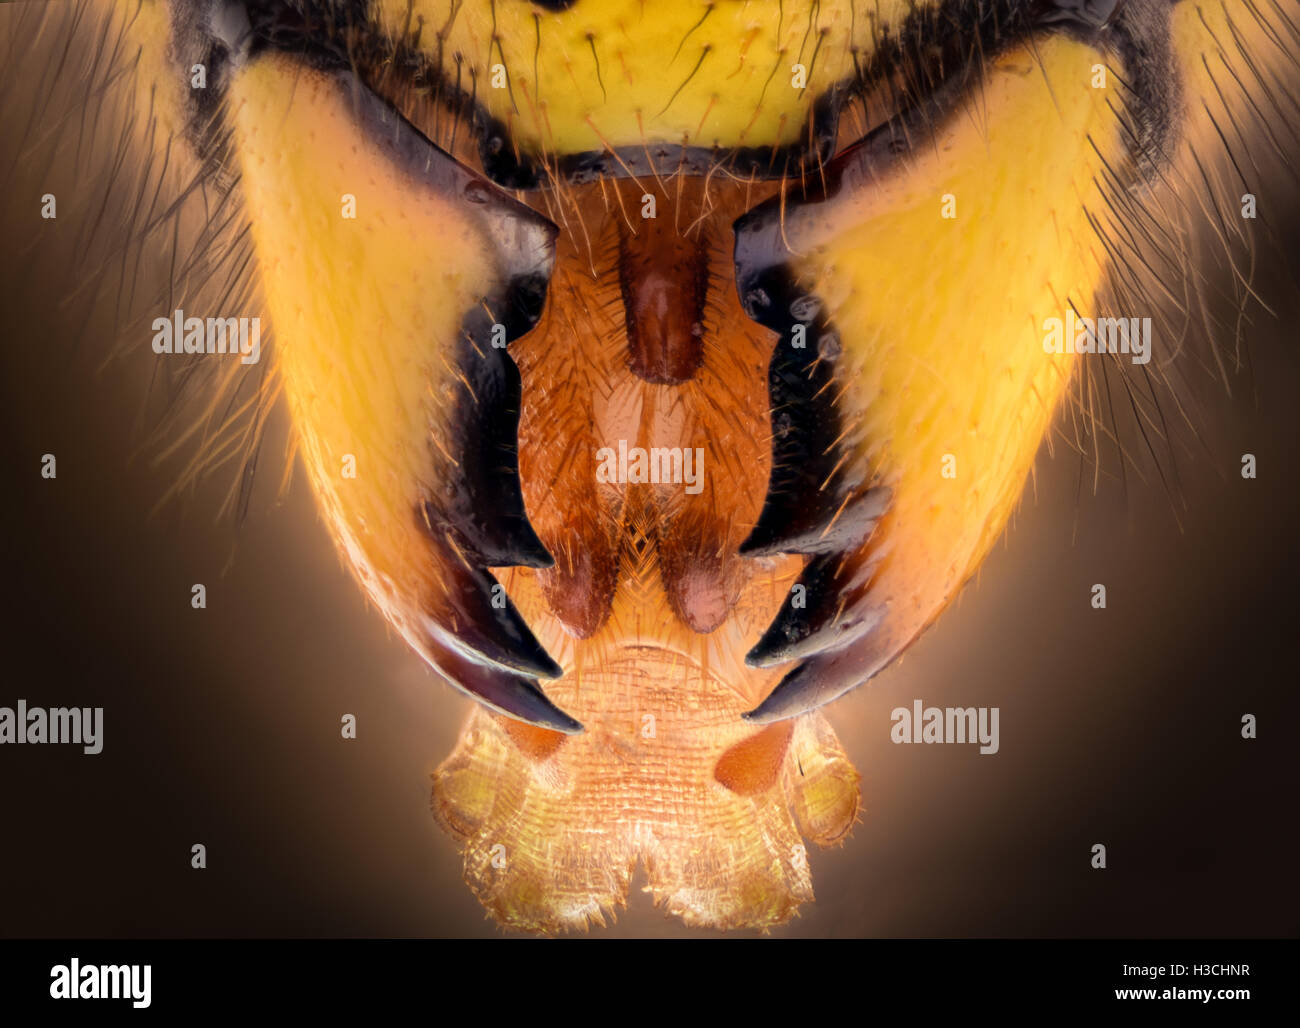 Extreme magnification - Wasp jaws - Stock Image